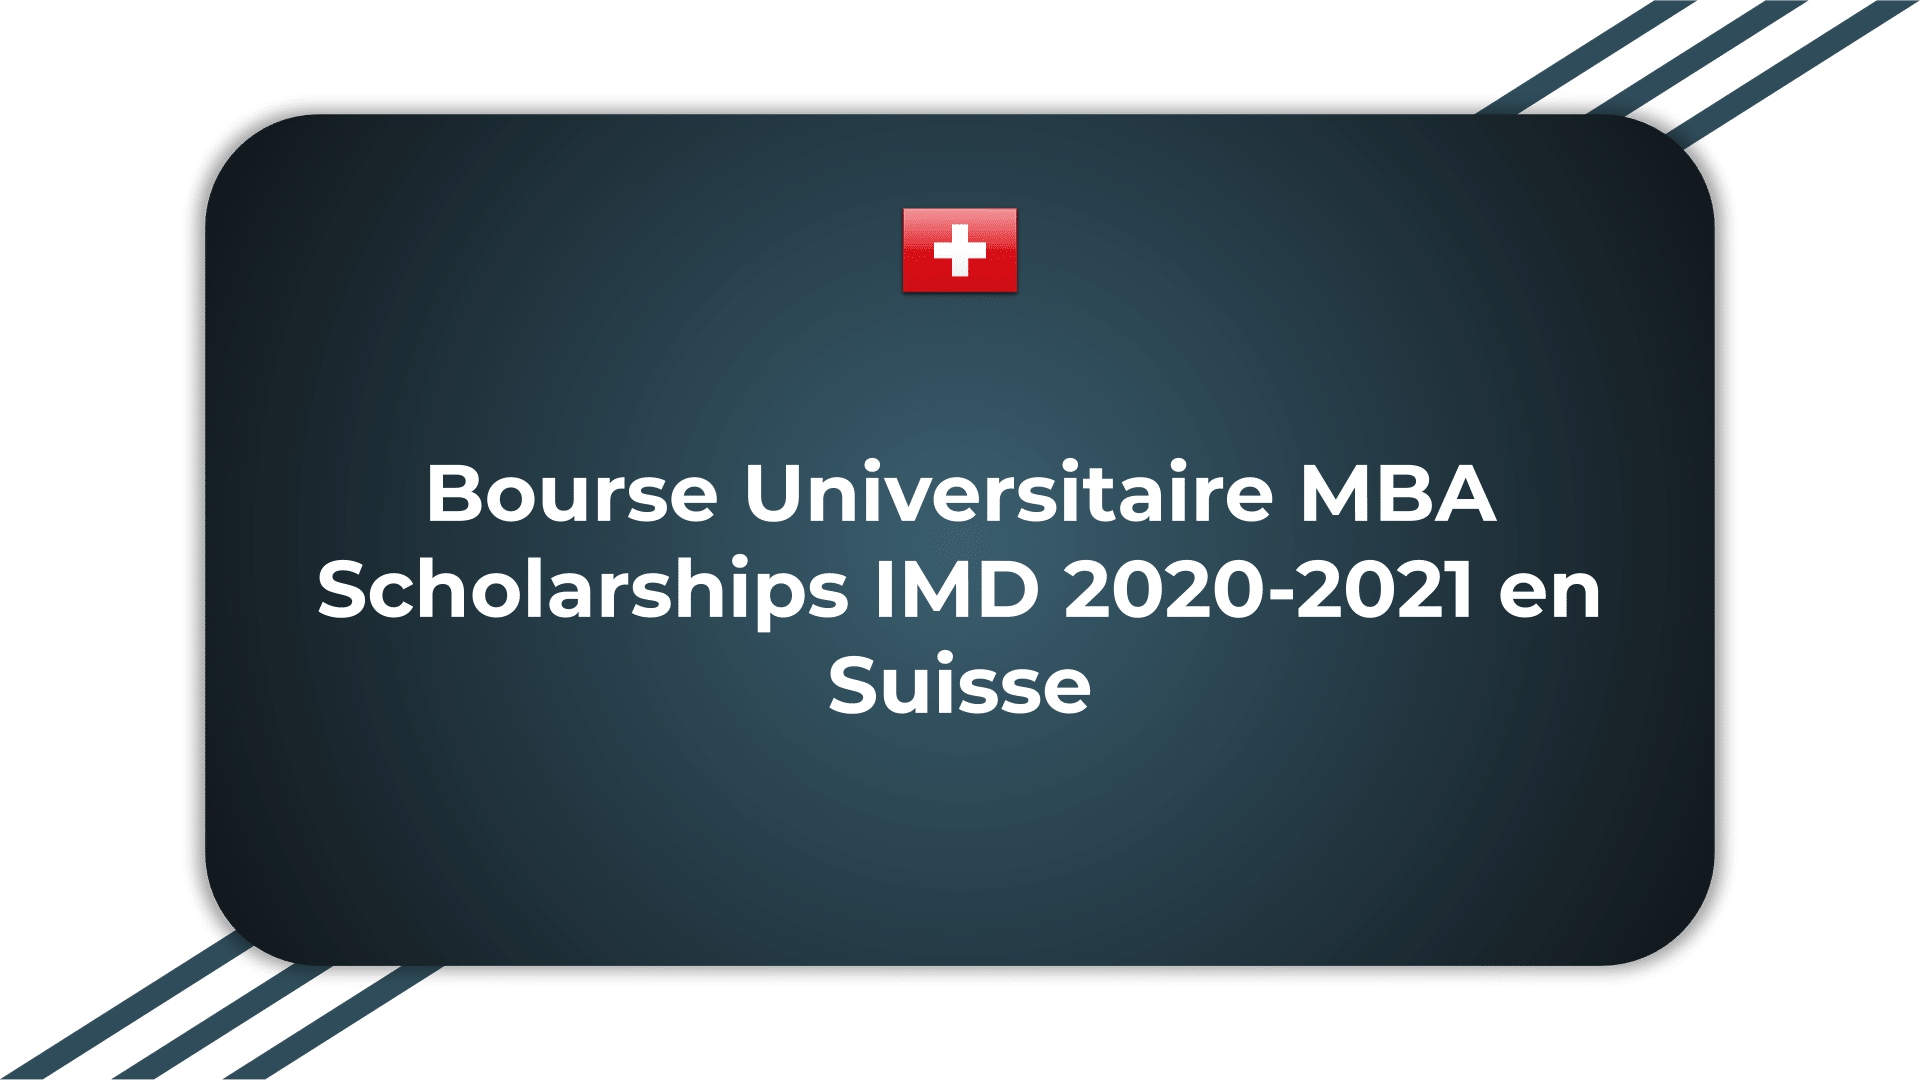 Bourse Universitaire MBA Scholarships IMD